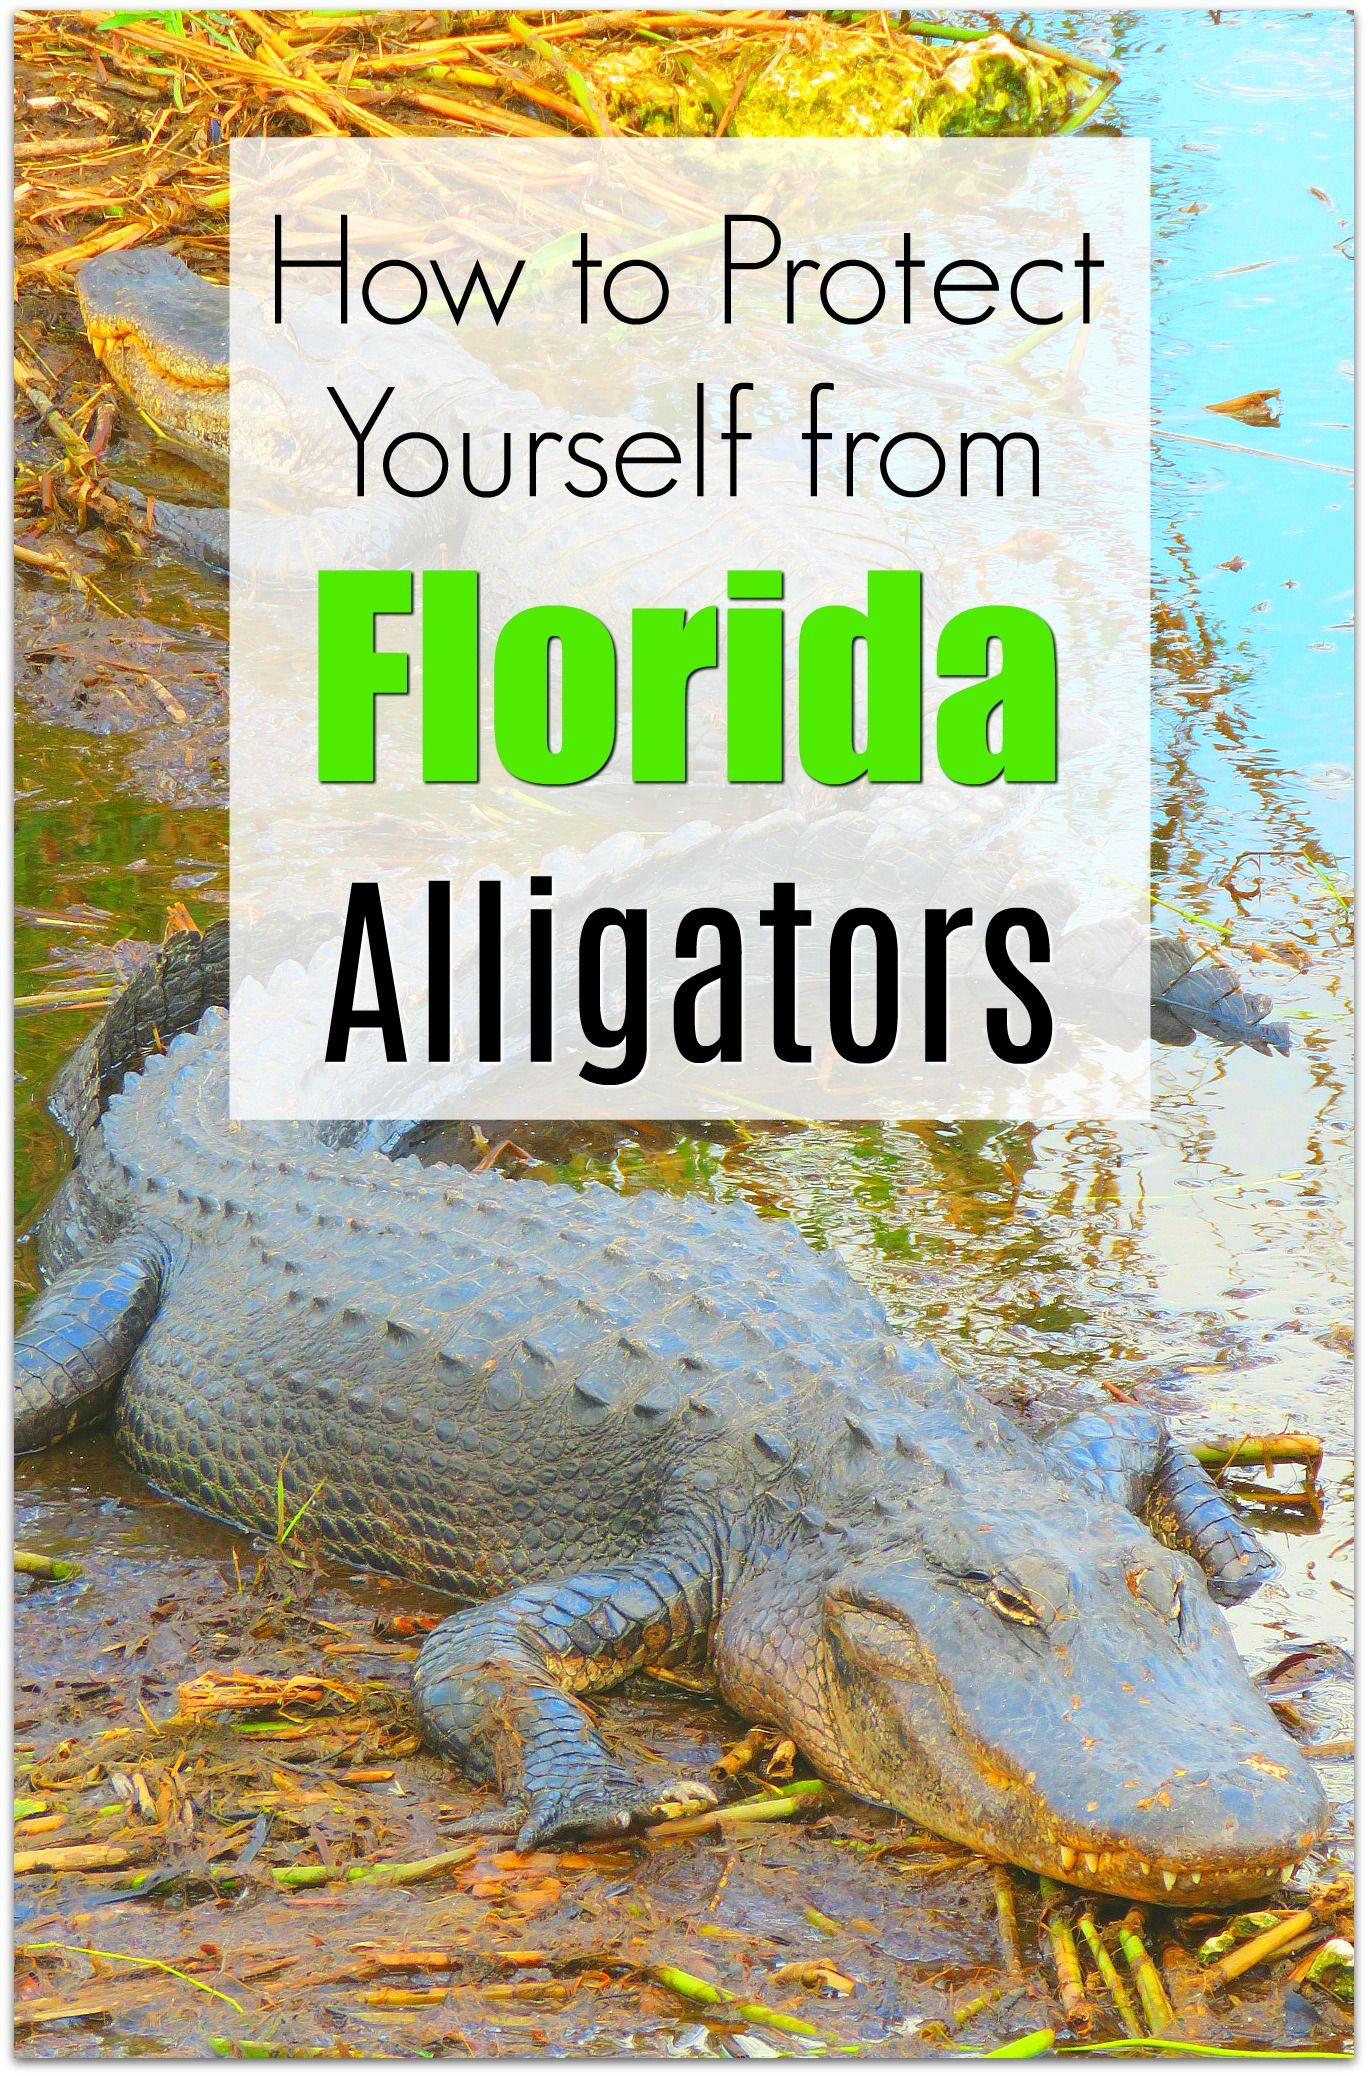 How to Protect Yourself from Alligators in Florida is part of How To Protect Yourself From Alligators In Florida Kim And - How do you protect yourself from an alligator attack in Florida  It's a question most are wondering after the tragic attack of a toddler by an alligator at Disney World  Are the waterways in Florida safe  What should Orlando and Florida area vacationers know  The Gator Facts Alligators live in fresh and brackish (mix of [   ]